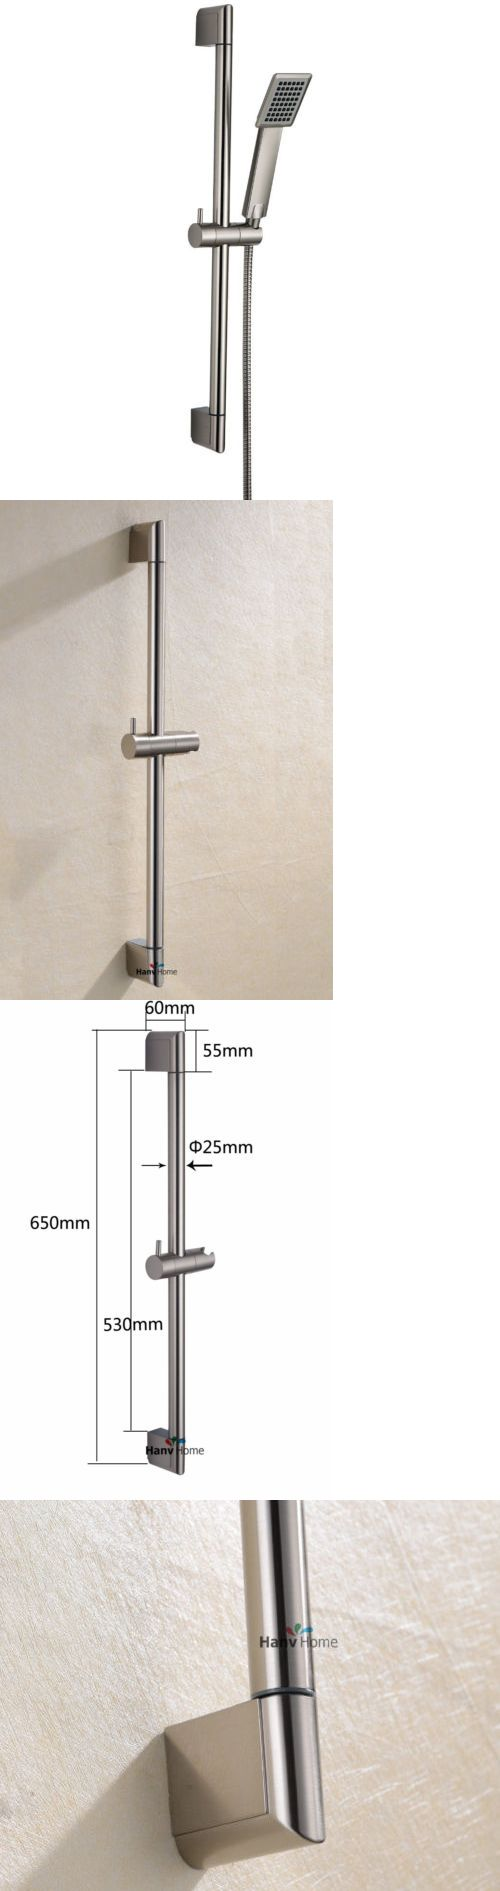 Shower Heads 71282: New Shower Riser Rail Sliding Bar And Shower Head And 1.5M Hose Set Brushed Nickel -> BUY IT NOW ONLY: $38.55 on eBay!